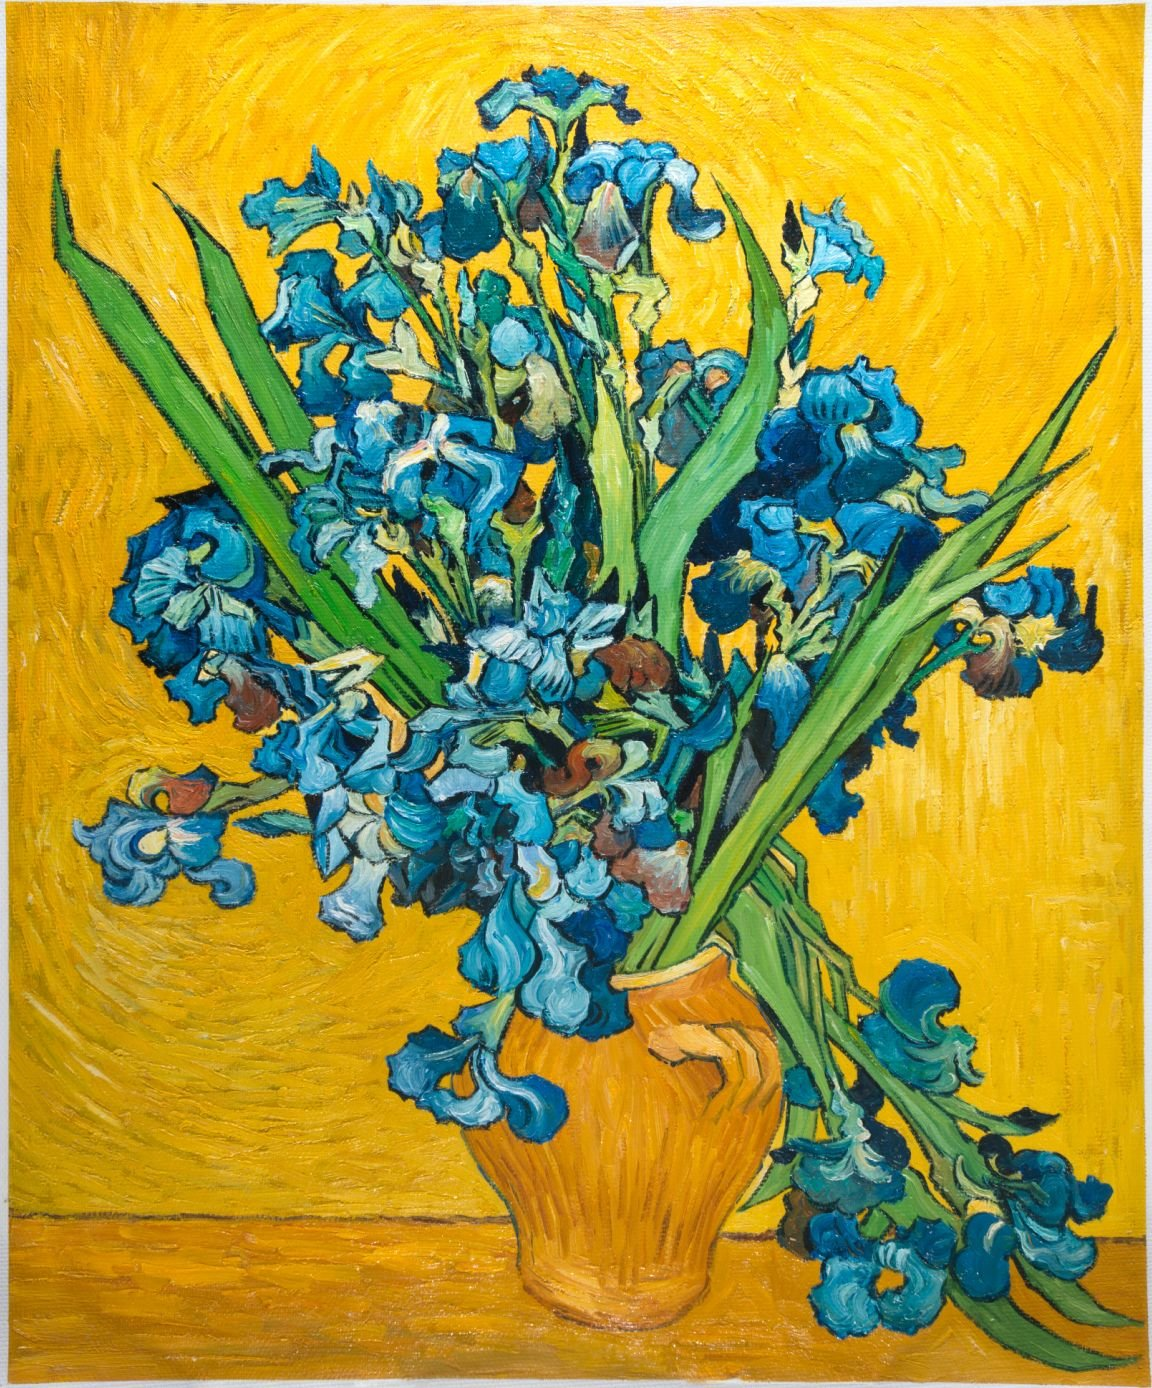 Vase with irises against a yellow background van gogh studio van gogh reproduction vase with irises with a yellow background reviewsmspy